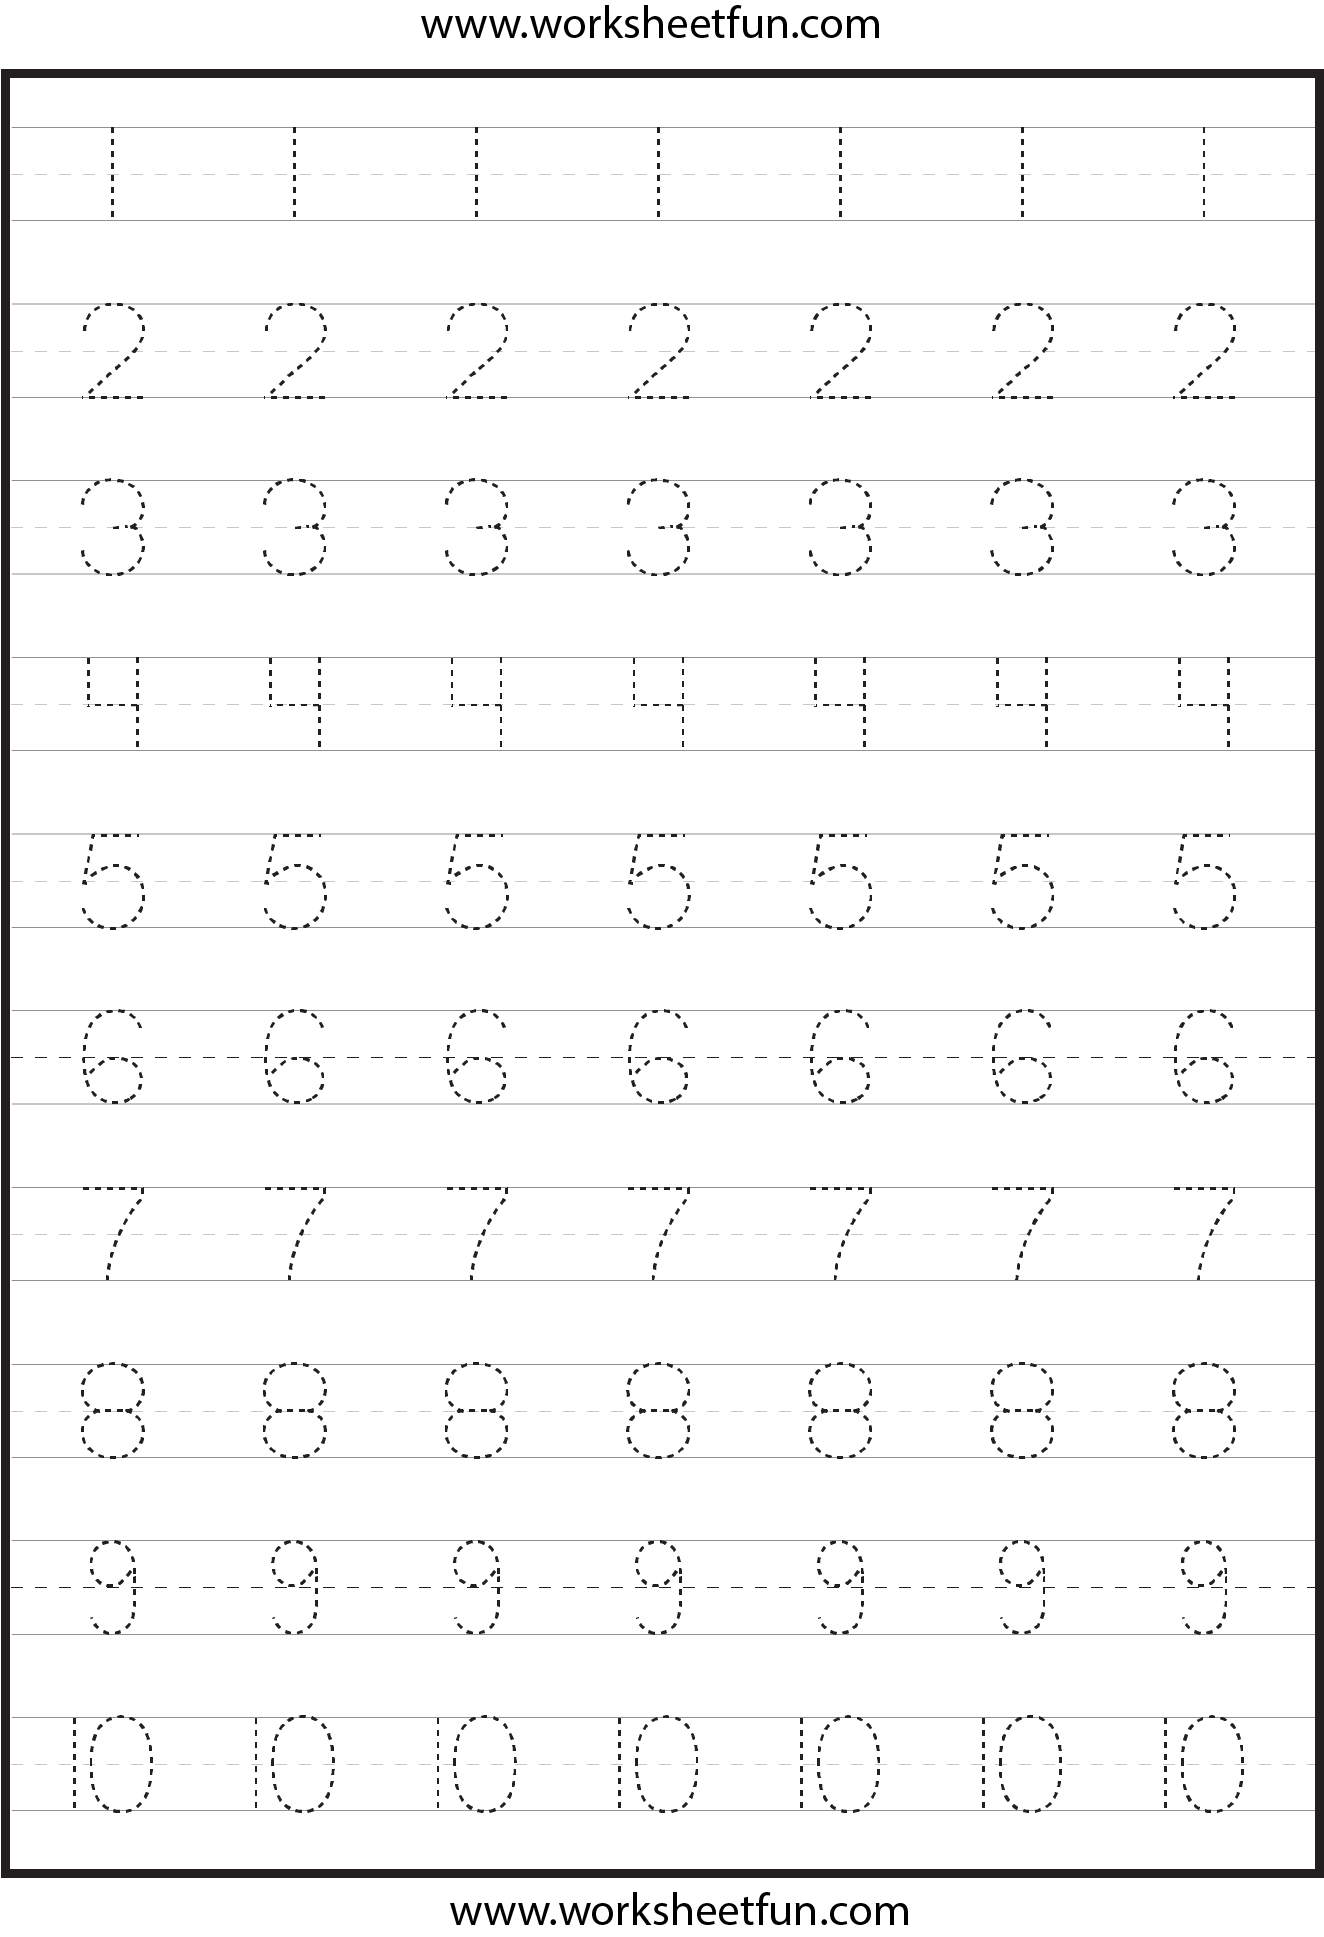 worksheet Pre K Tracing Worksheets number tracing worksheets for kindergarten 1 10 ten worksheets